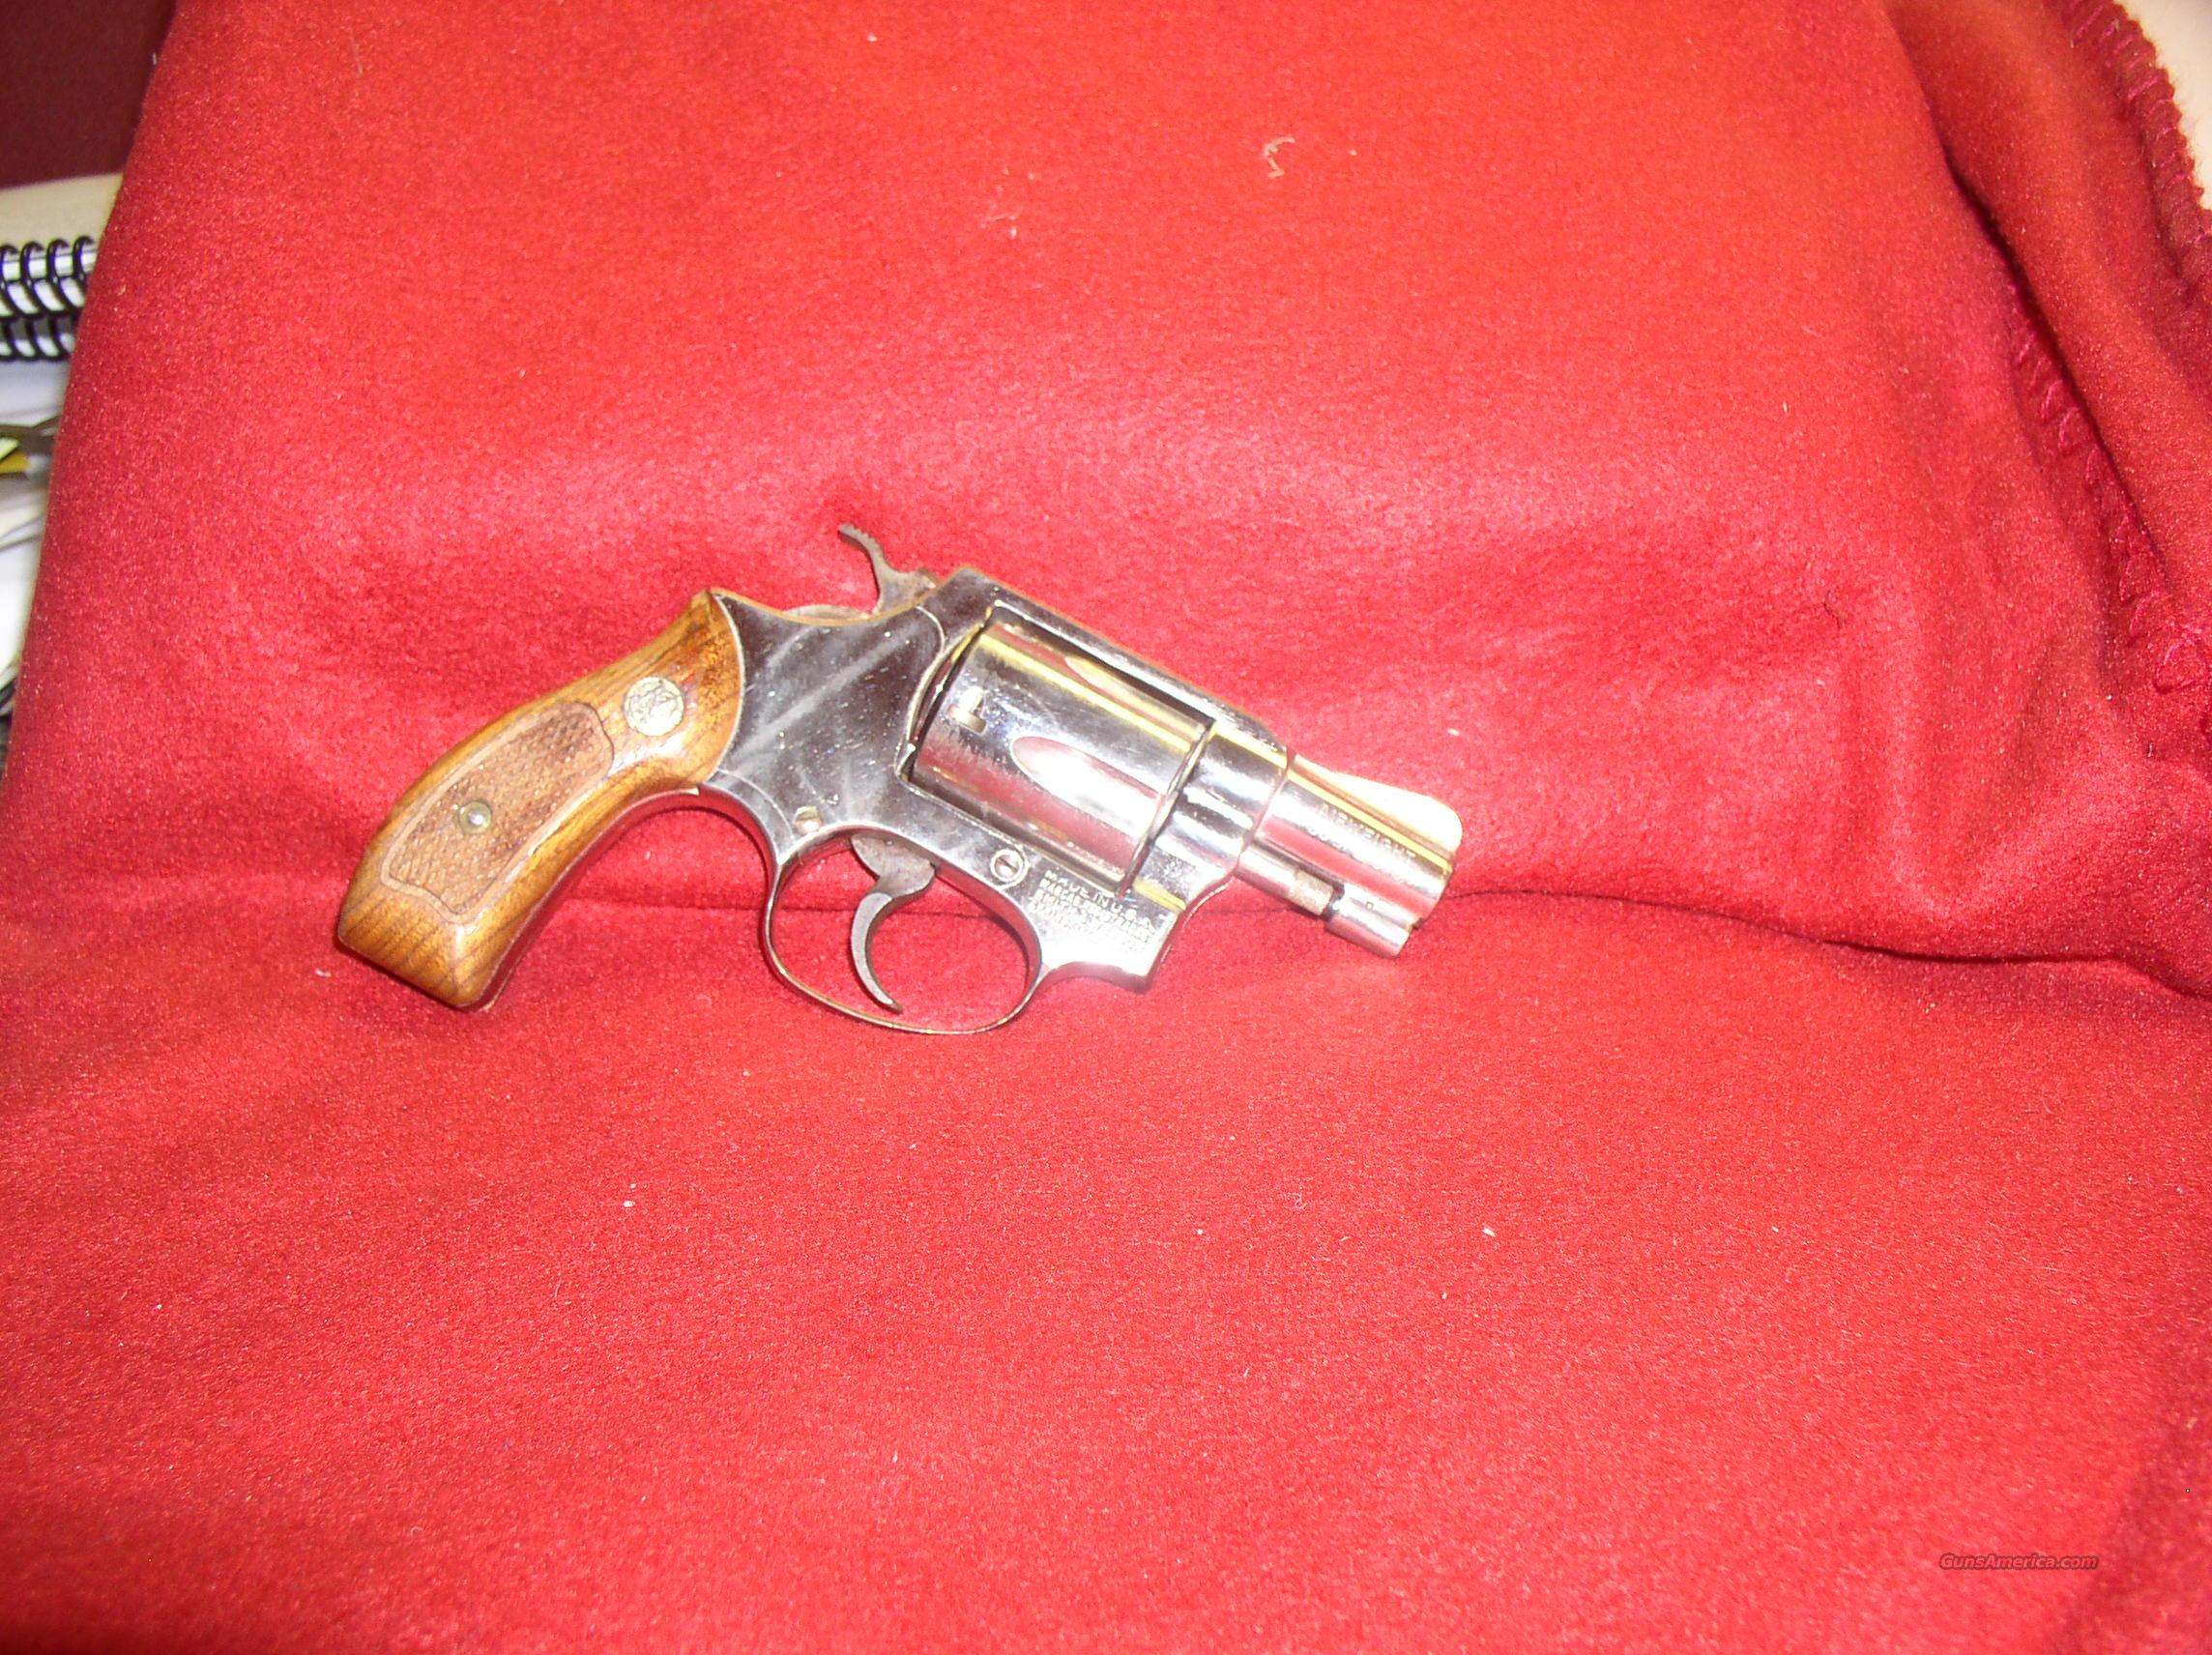 SMITH WESSON 37  AIRWEIGHT   NICKEL  Guns > Pistols > Smith & Wesson Revolvers > Pocket Pistols